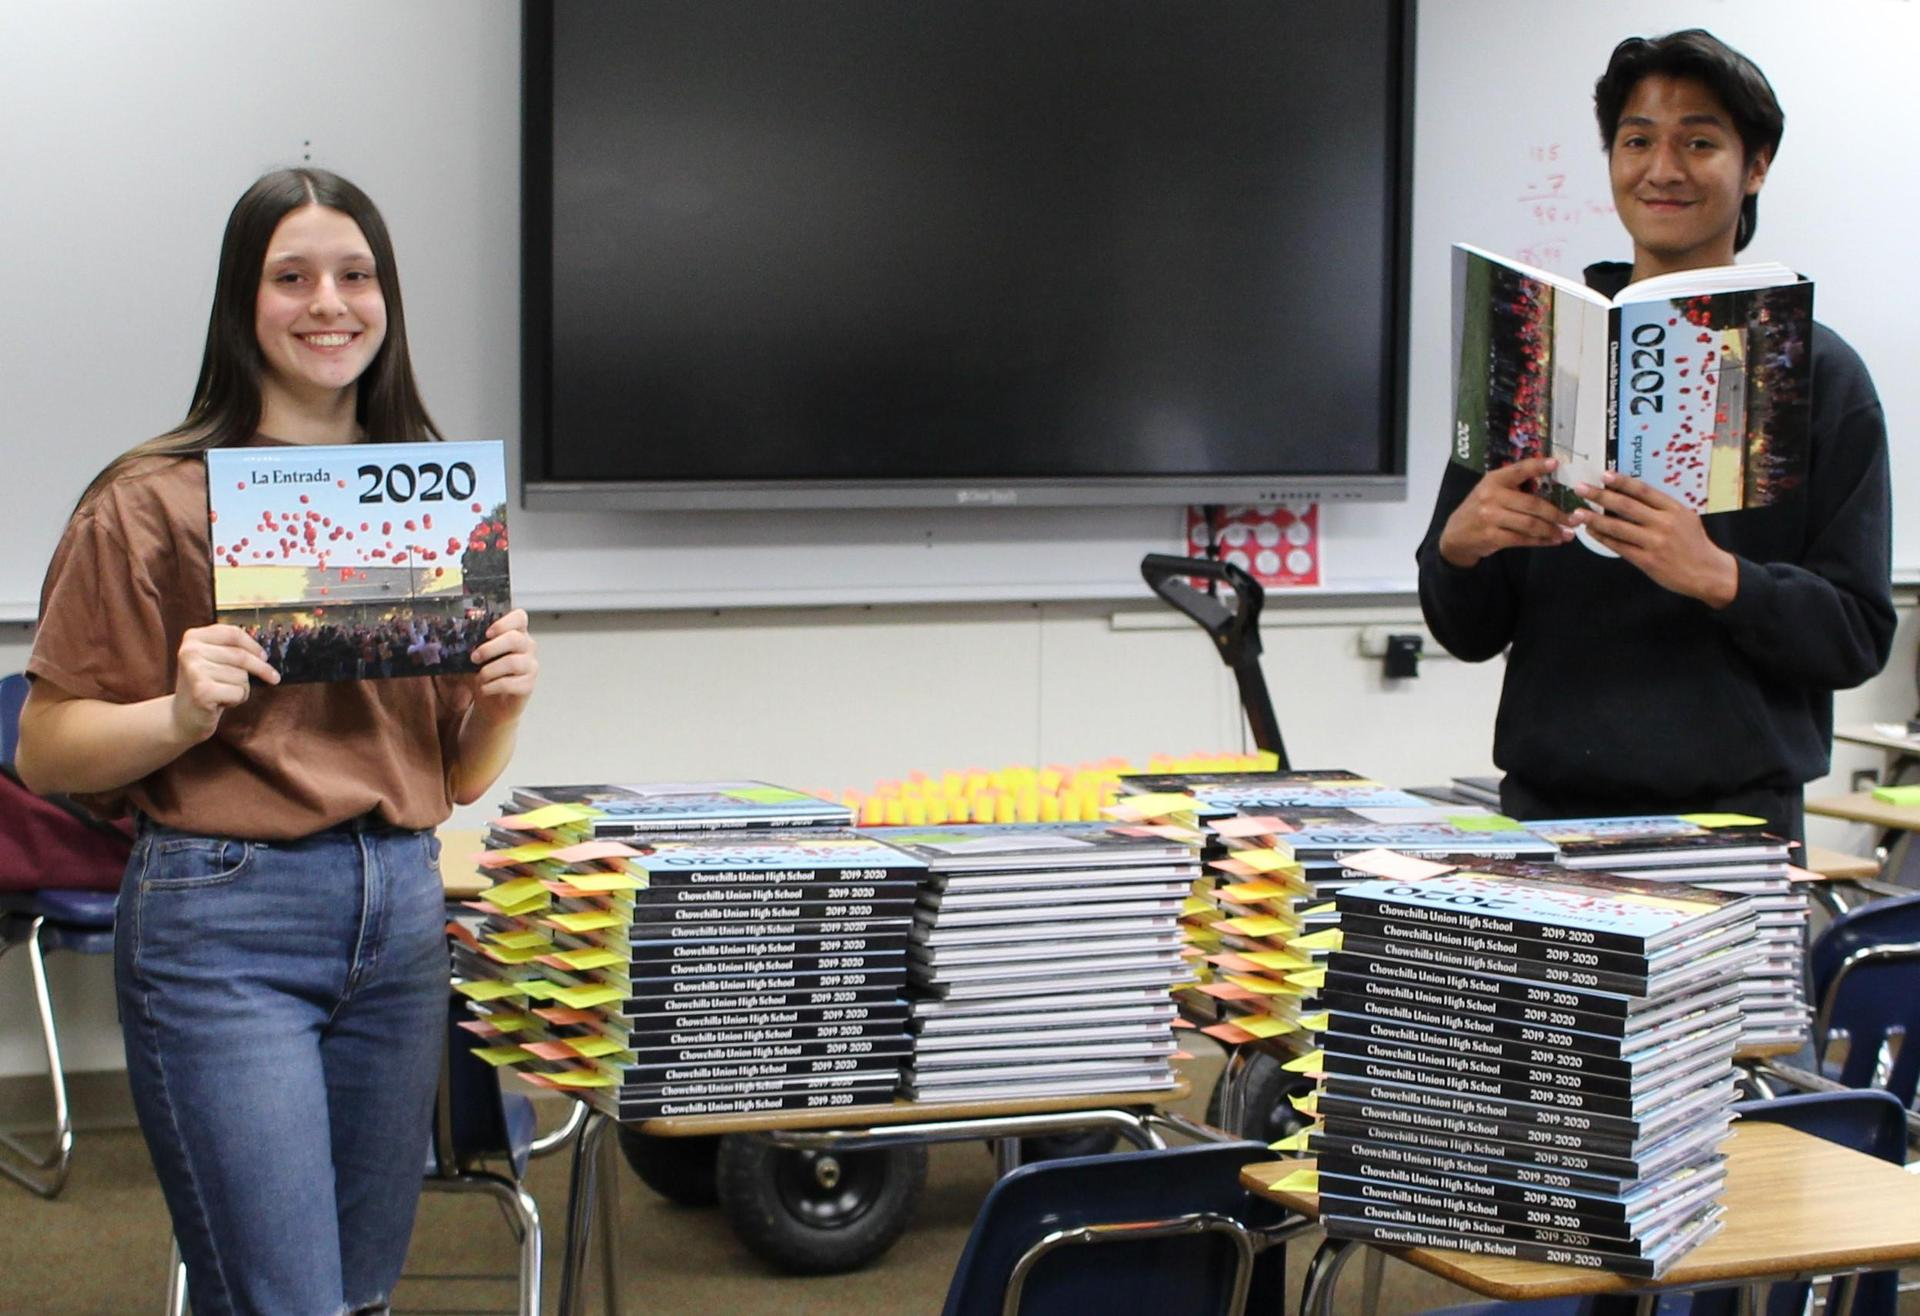 Grace Sheppard and Luis Guevara pose with the 2020 Yearbook